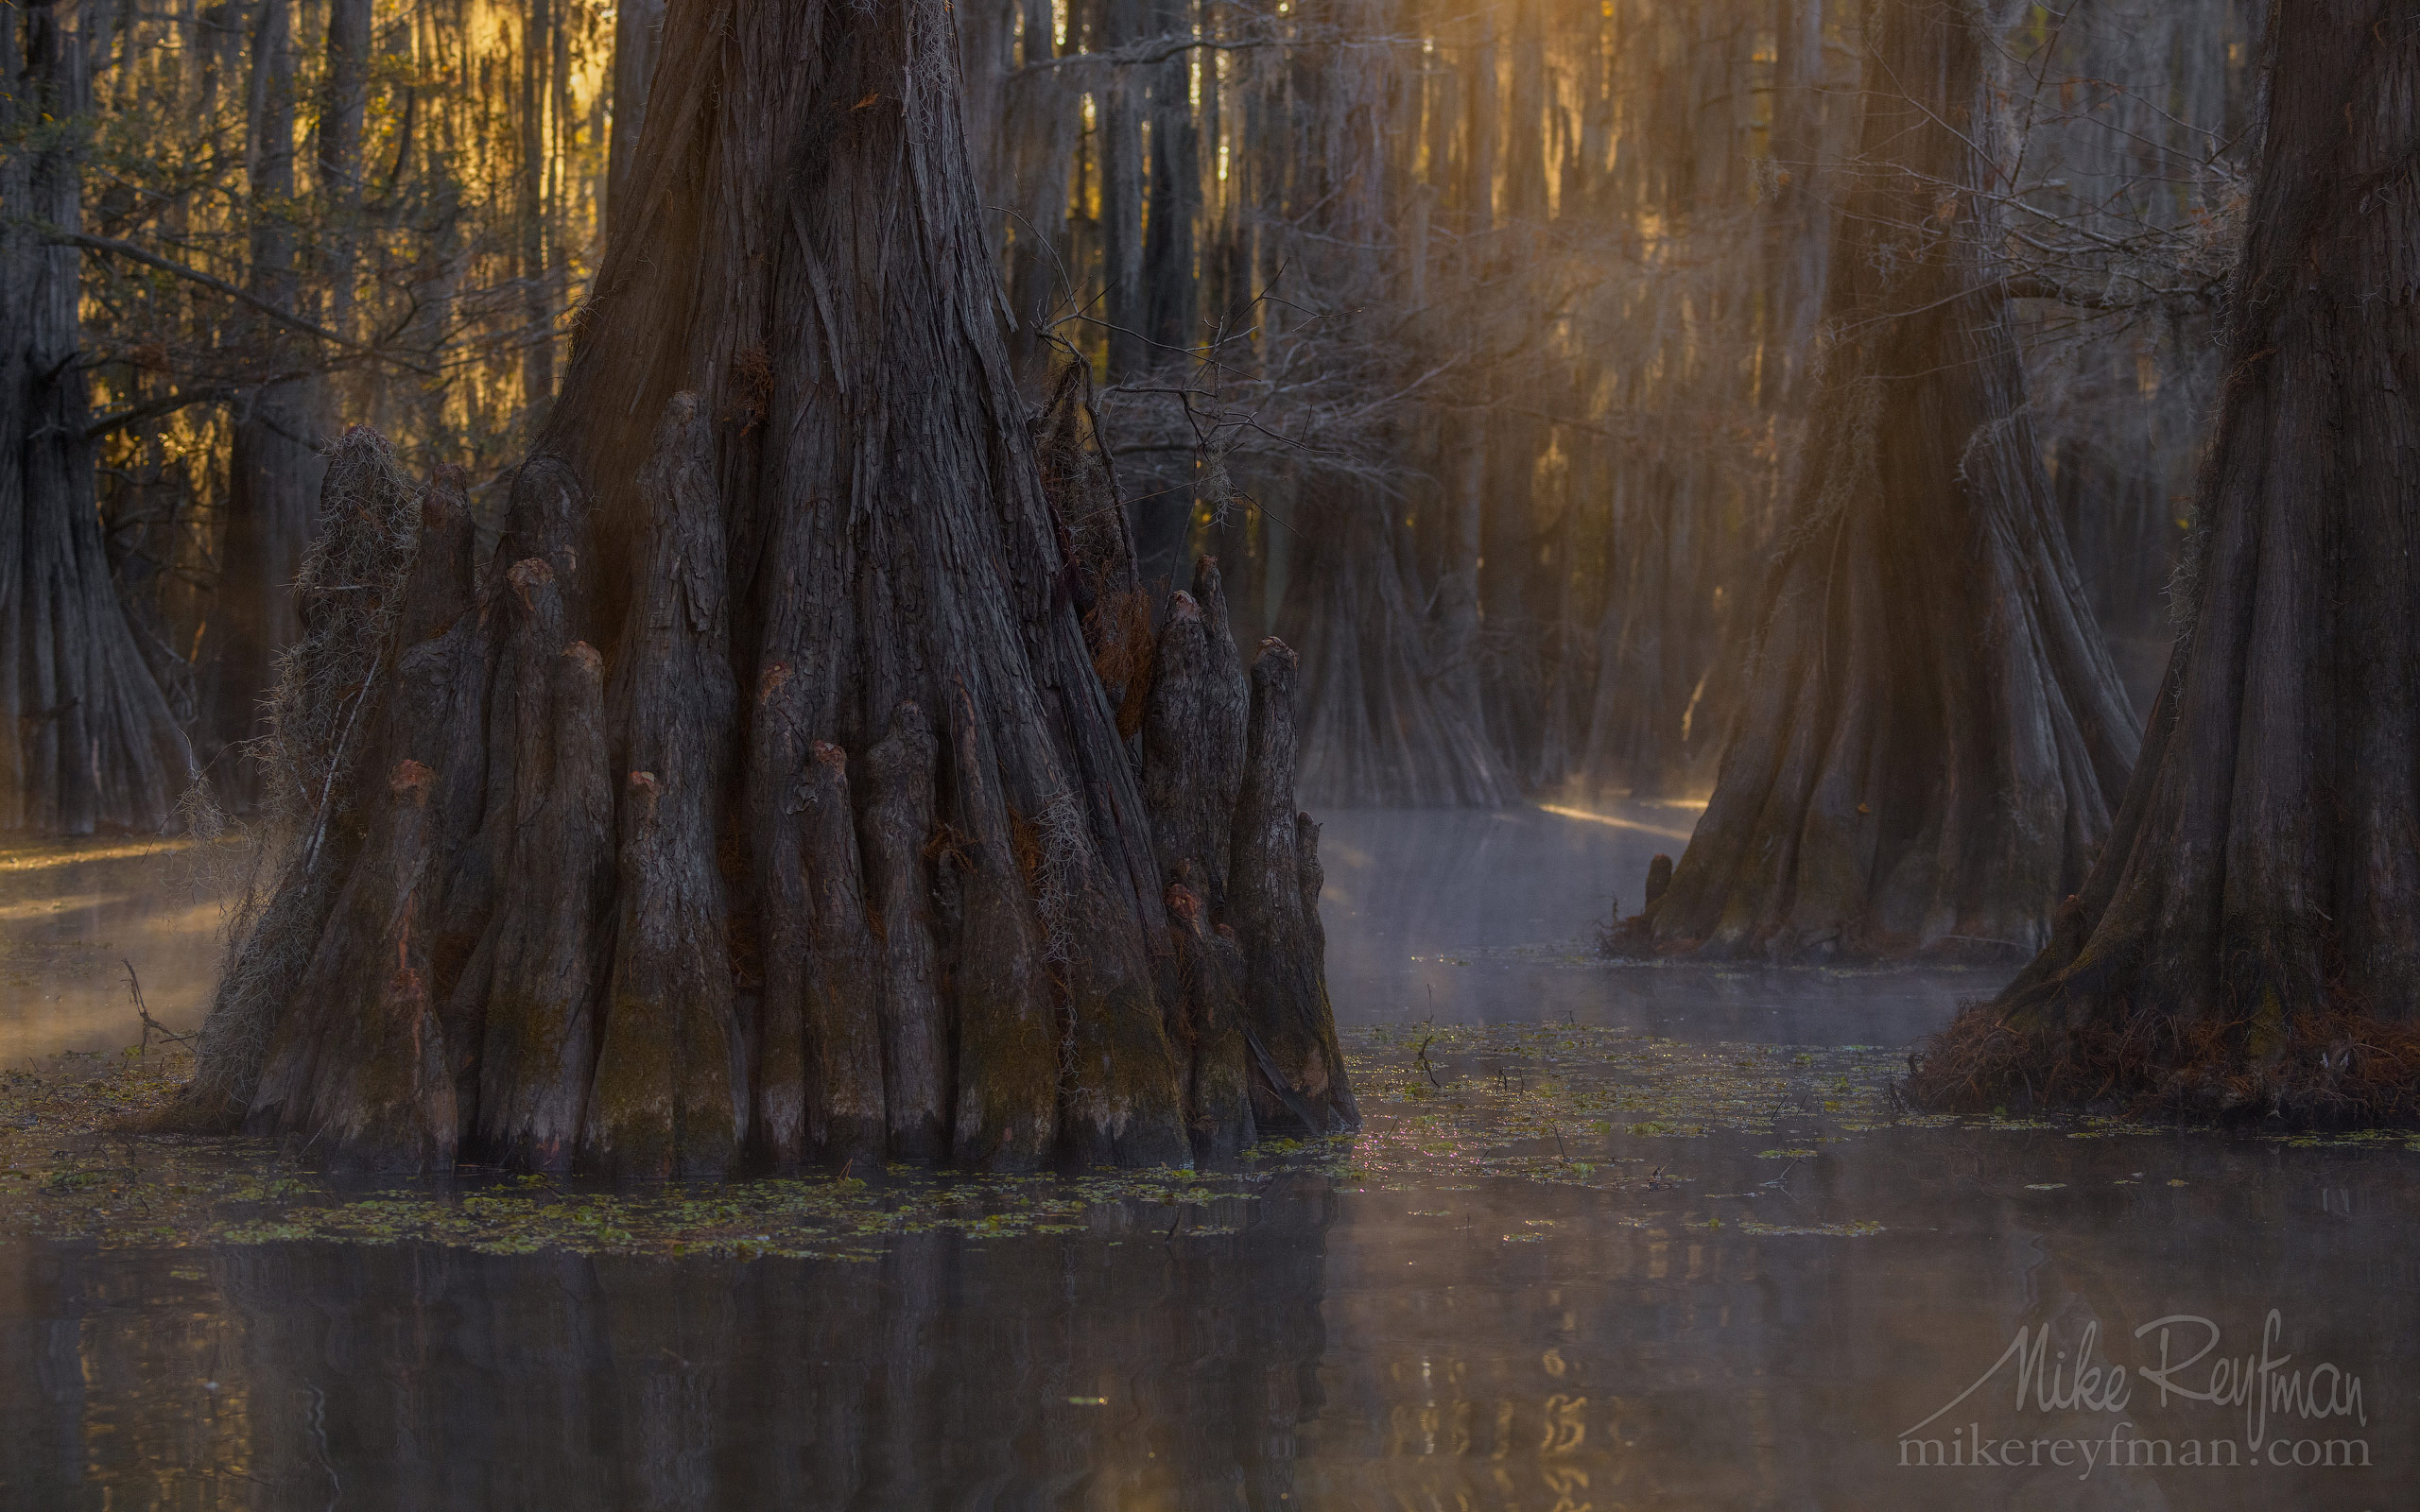 Bald Cypress trees in the swamp. Foggy morning on Caddo Lake, Texas, US 036-LT1-50A3419.jpg - Bold Cypress and Tupelo Trees in the swamps of Atchafalaya River Basin. Caddo, Martin and Fousse Lakes. Texas/Louisiana, USA. - Mike Reyfman Photography